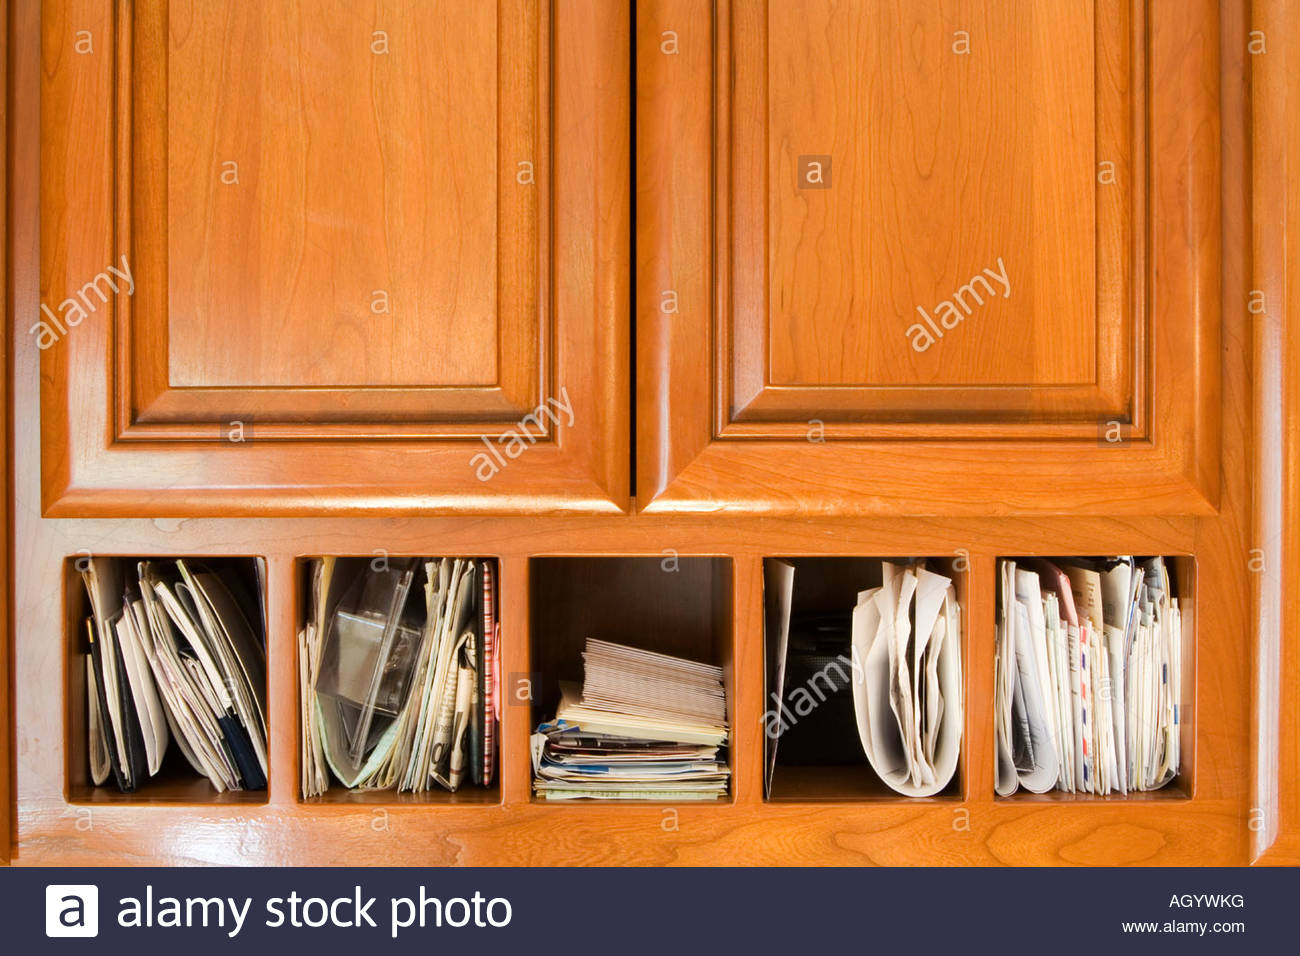 Beau Organization Of Mail And Cabinetes